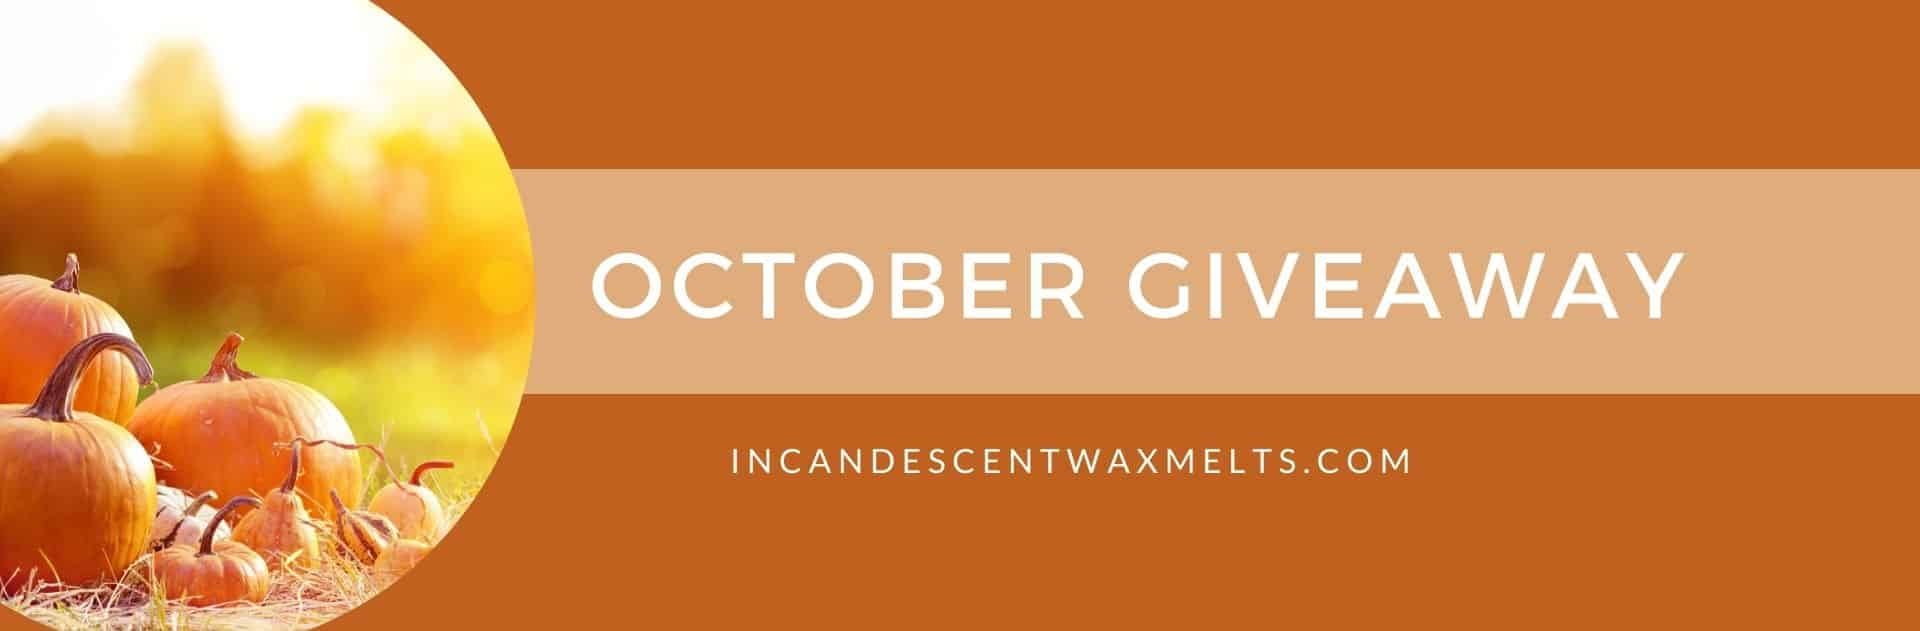 OCTOBER 2020 GIVEAWAY